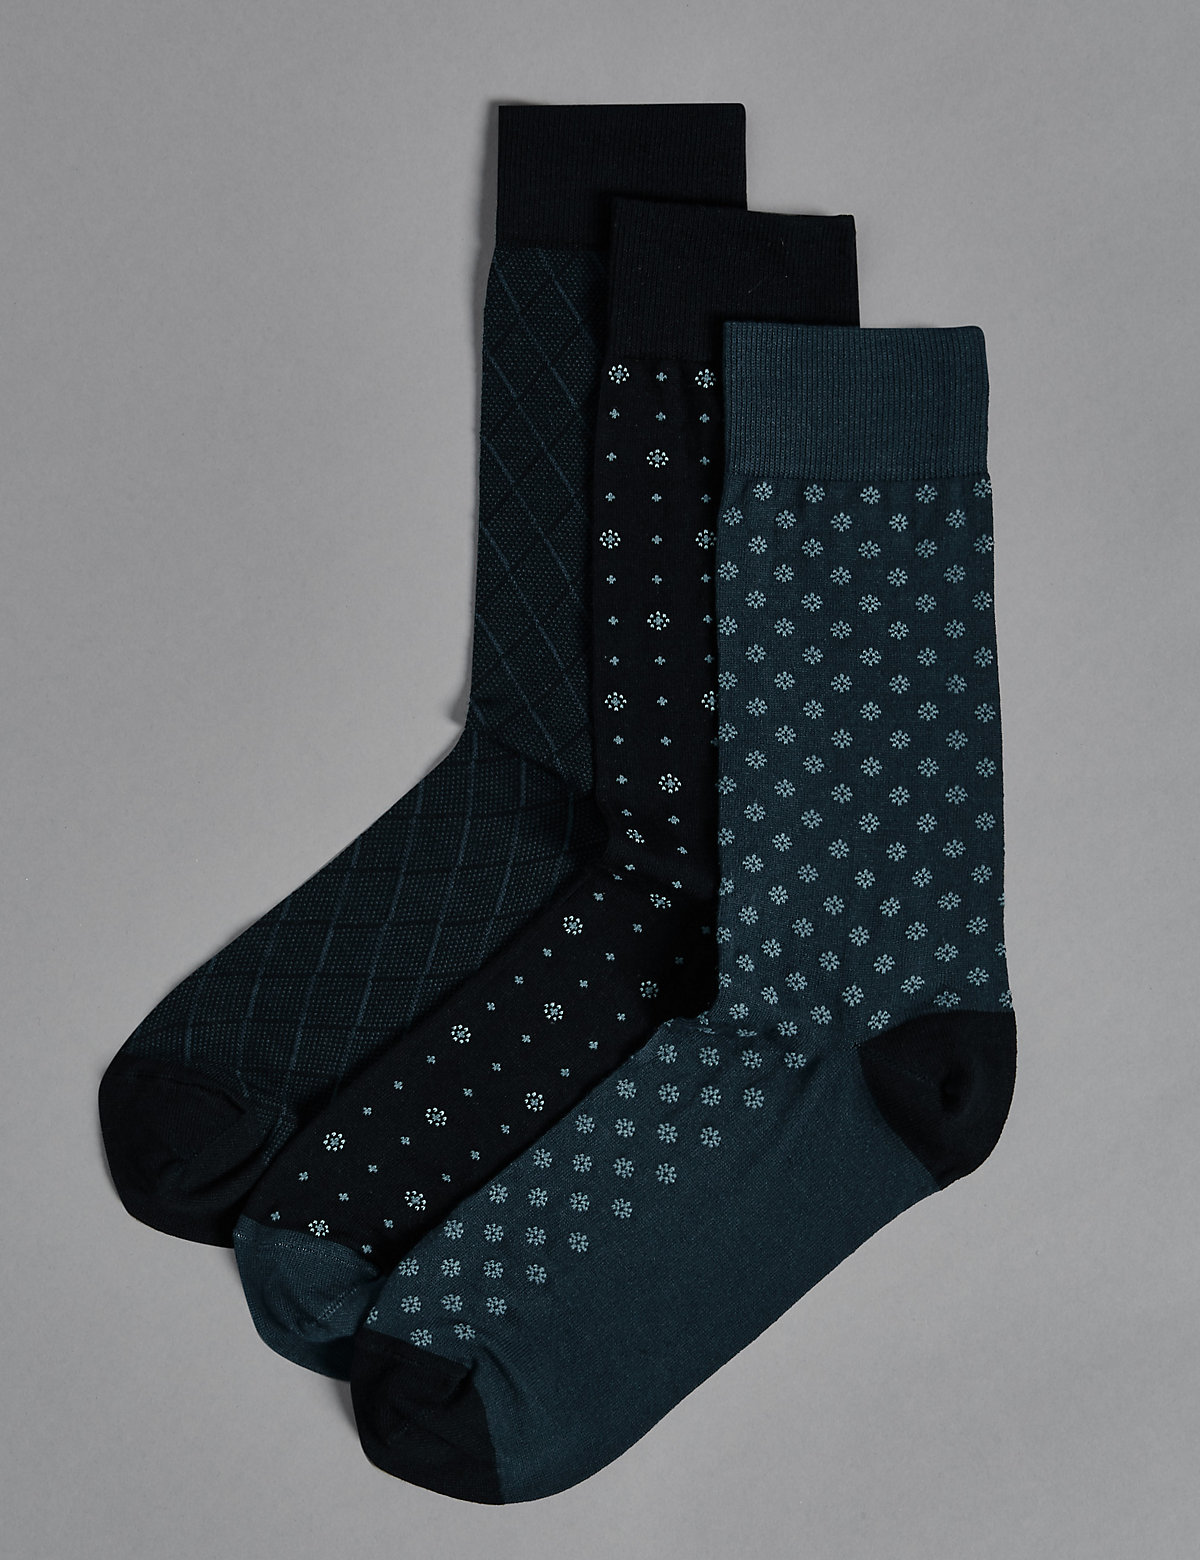 Autograph 3 Pairs of Modal Pima Blend Socks